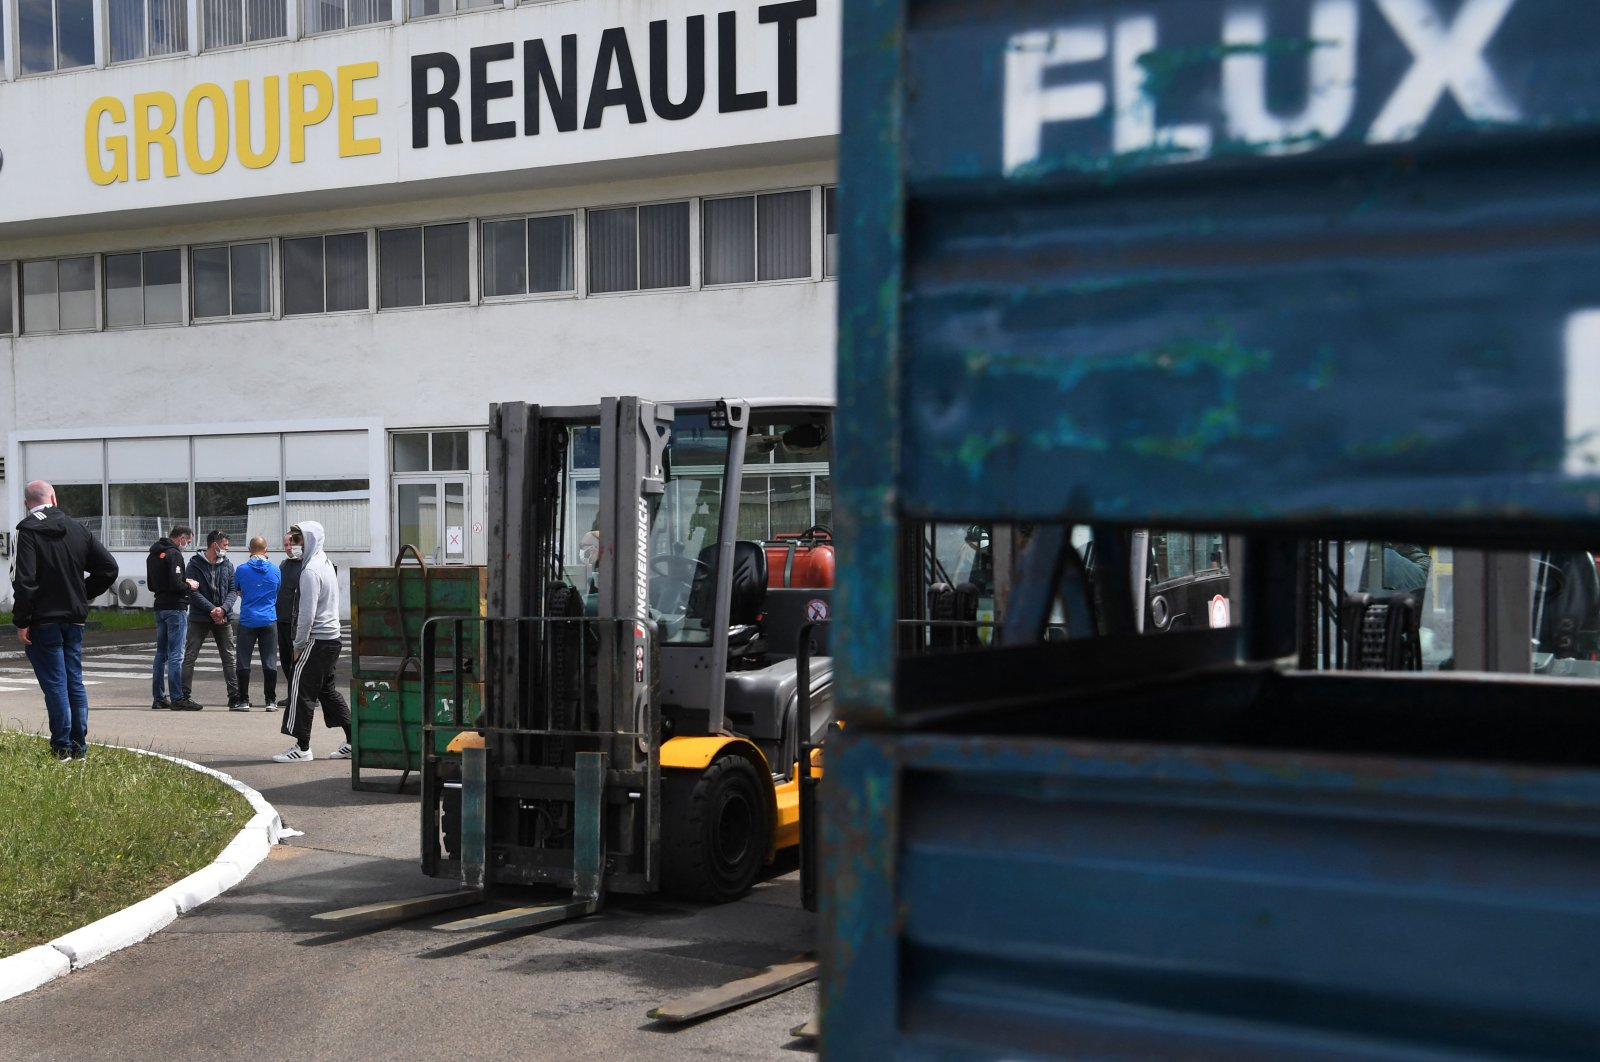 """CGT unionists of the """"Fonderie de Bretagne"""" foundry, a subsidiary of the Renault group, take part in a gathering of striking employees after Renault announced the sale of the factory in Caudan, western France, April 28, 2021. (AFP Photo)"""